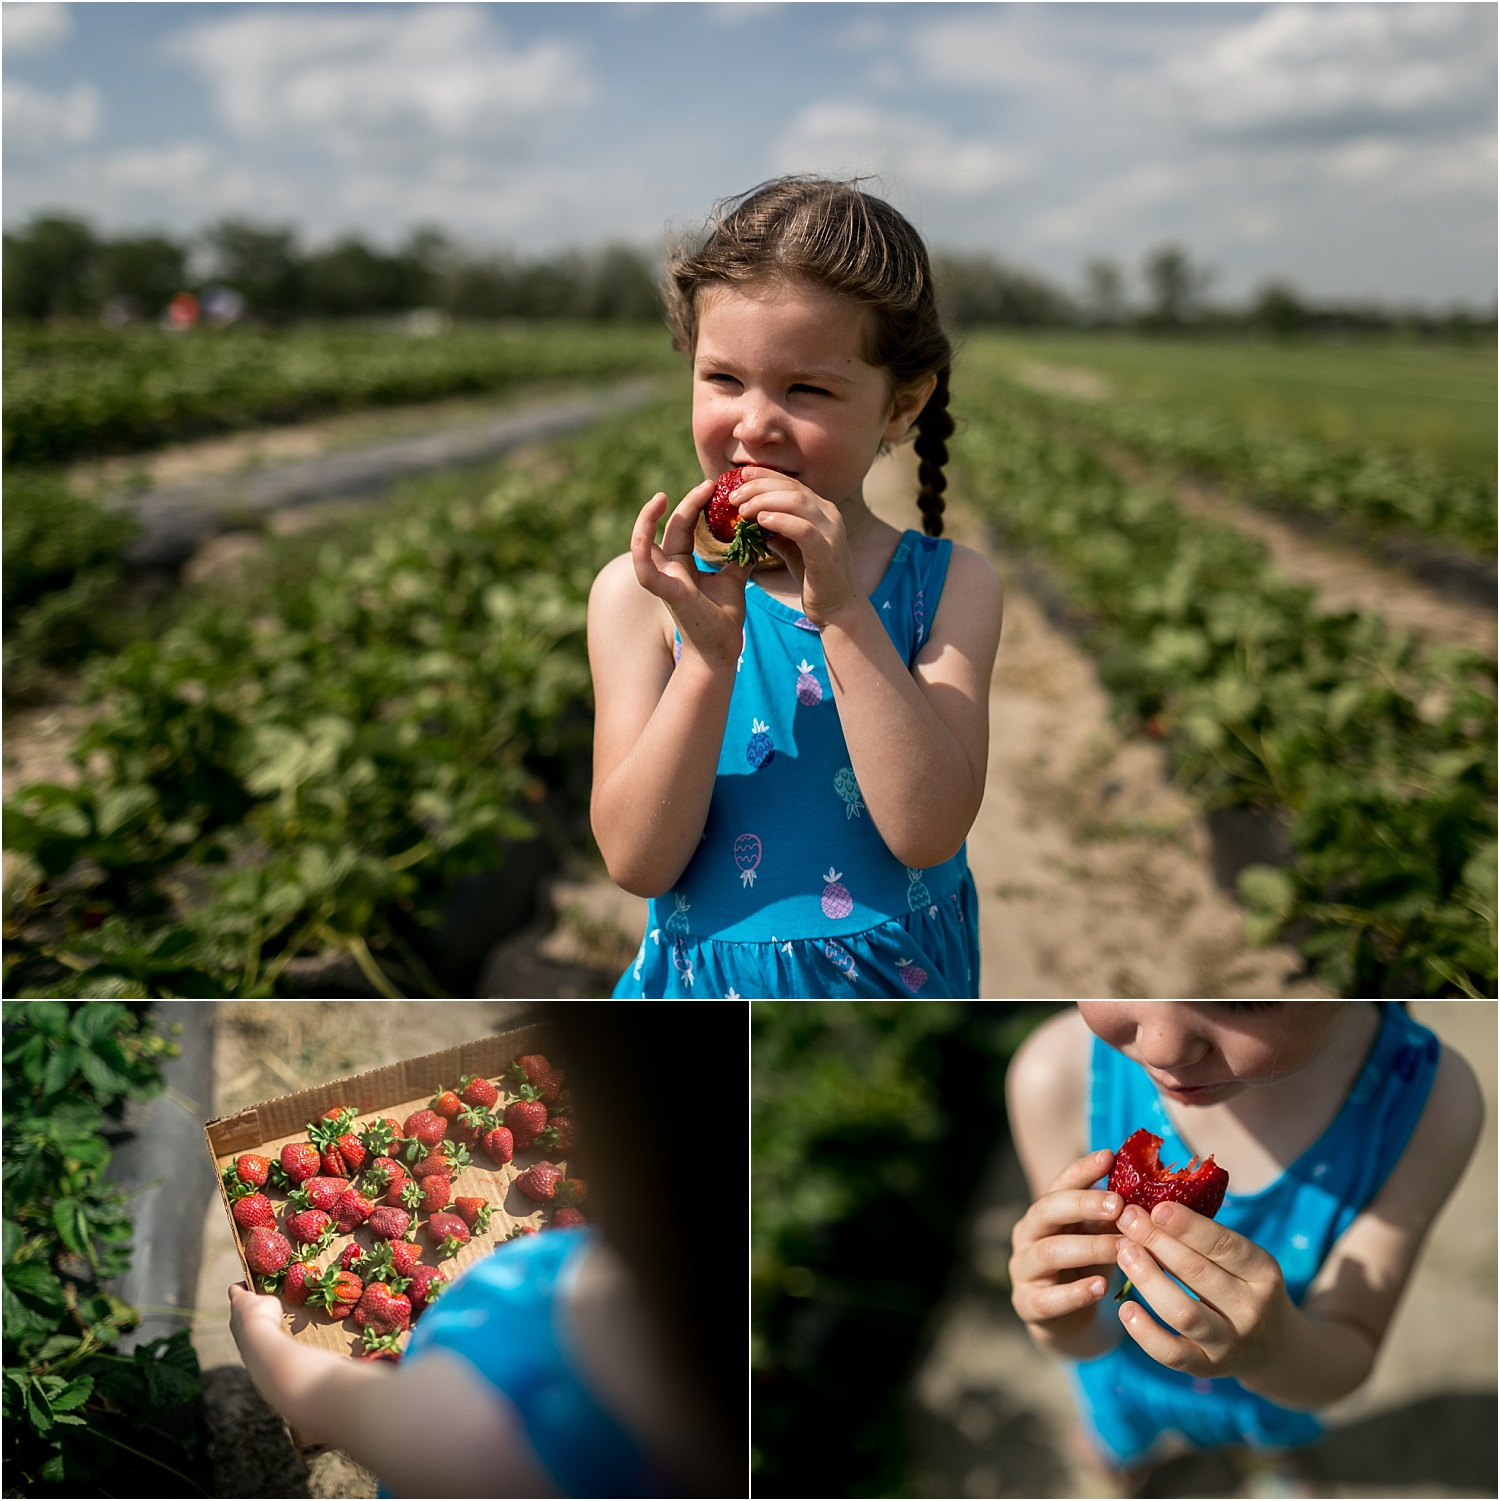 Strawberry picking at A and H Farm in Manhattan Kansas